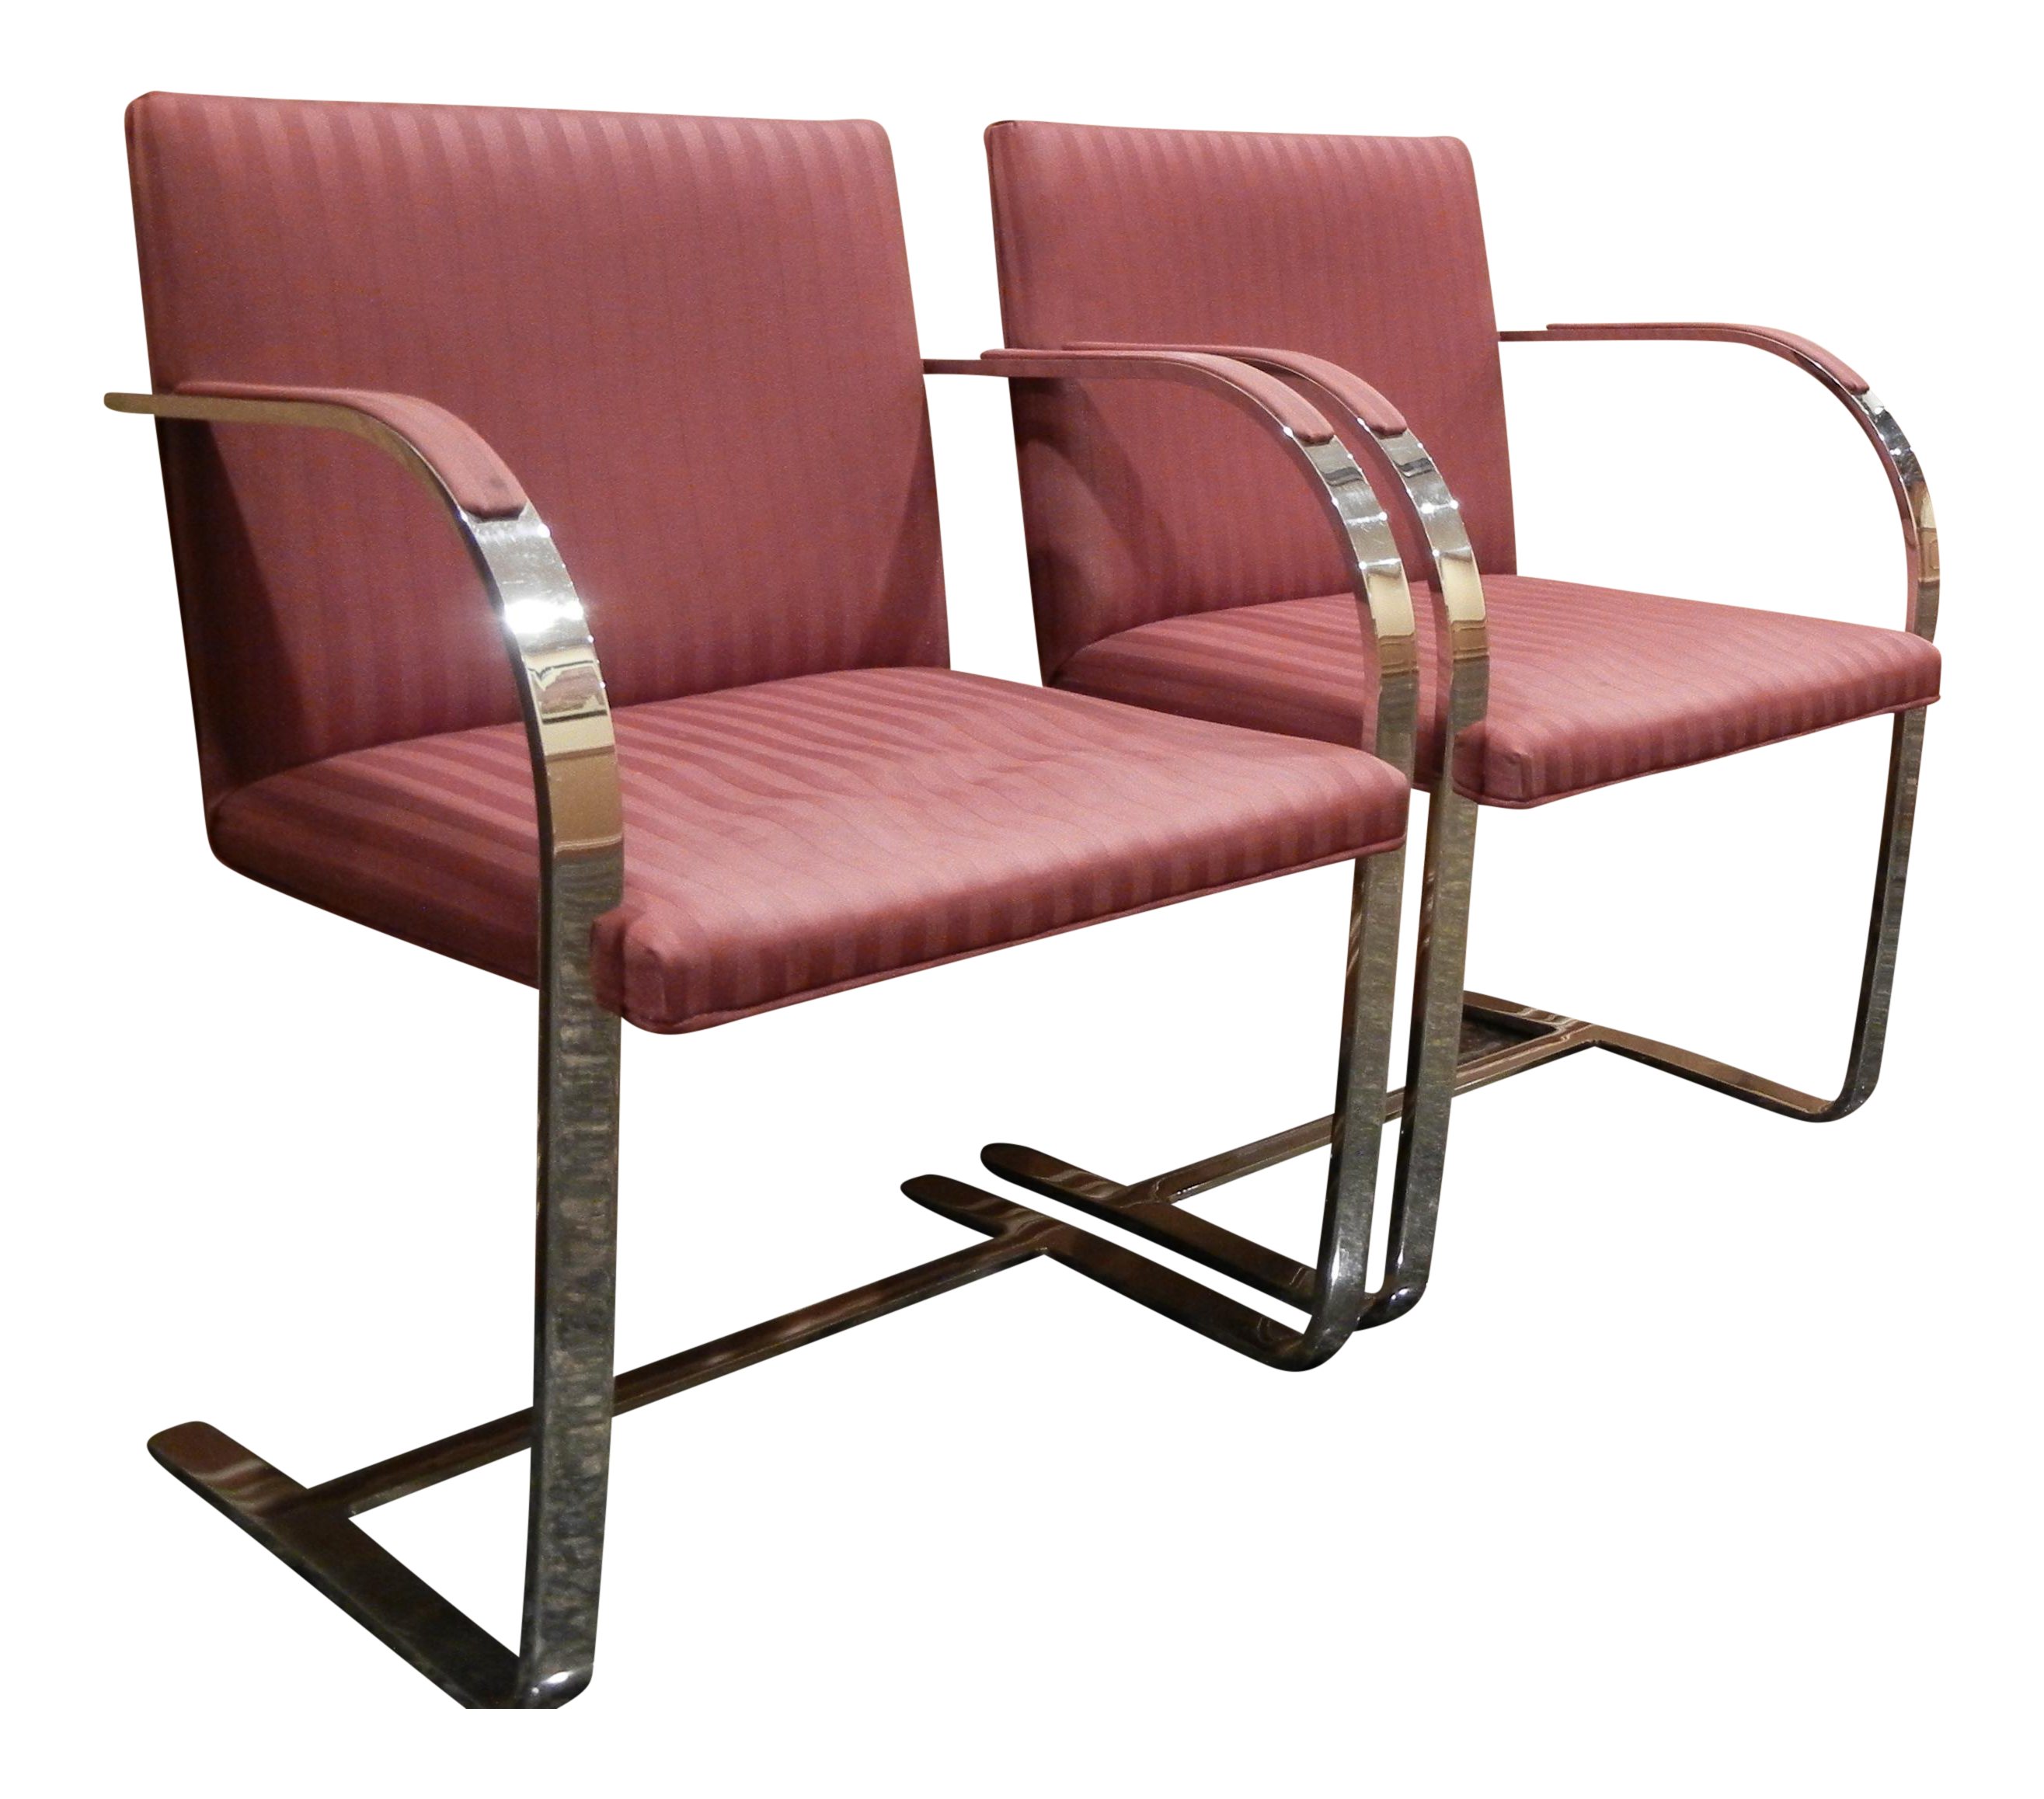 Gently Used Mies Van der Rohe Furniture | Up to 39% off at Chairish | used furniture brno